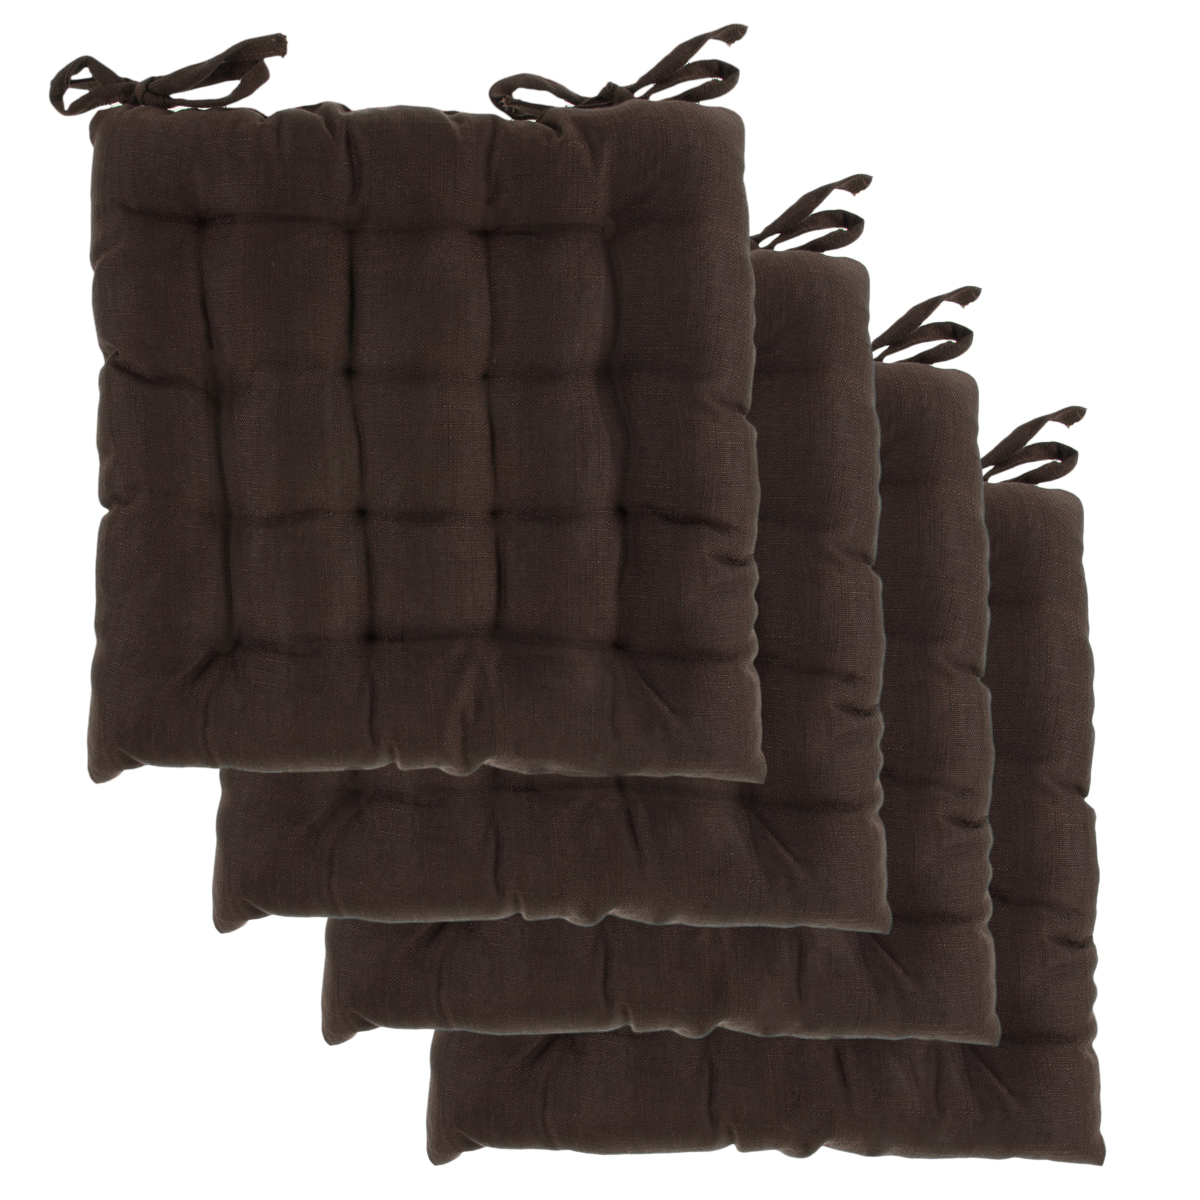 Dream Home, Set of 4, Indoor Chair Pads 16x16 Inches Square Tufted Seat Cushions Pillows With Ties by